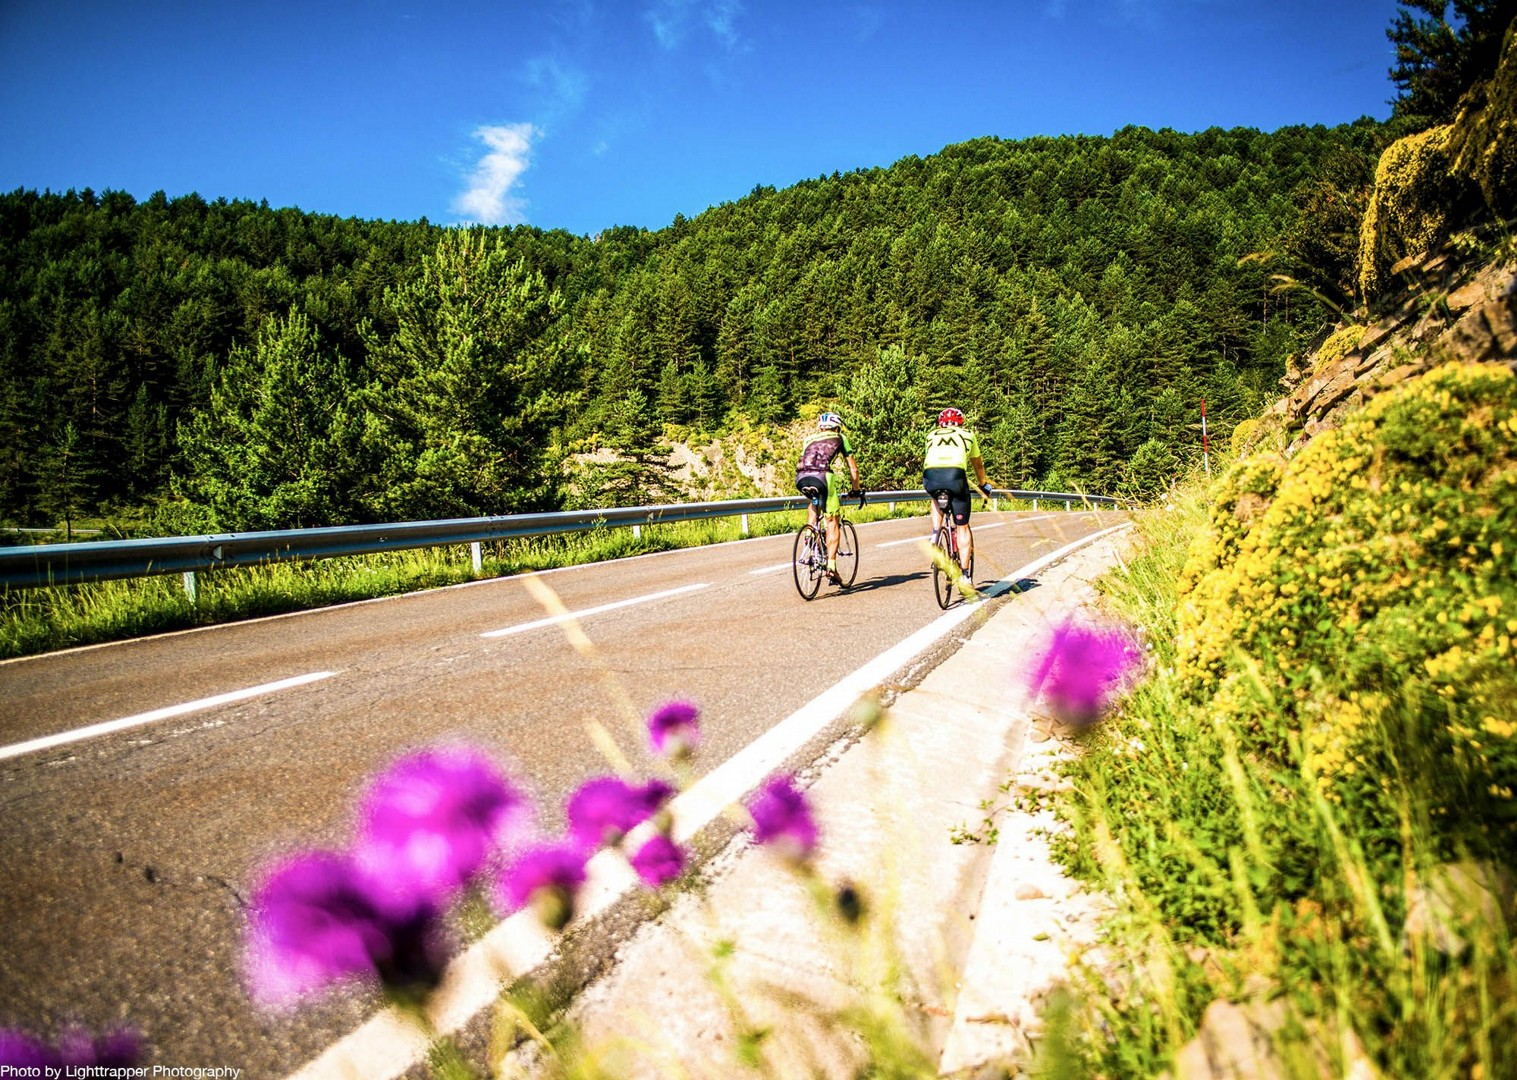 saddle-skedaddle-guided-road-cycling-in-france.jpg - France - Pyrenees Fitness Week (Grade 3-4) - Guided Road Cycling Holiday - Road Cycling